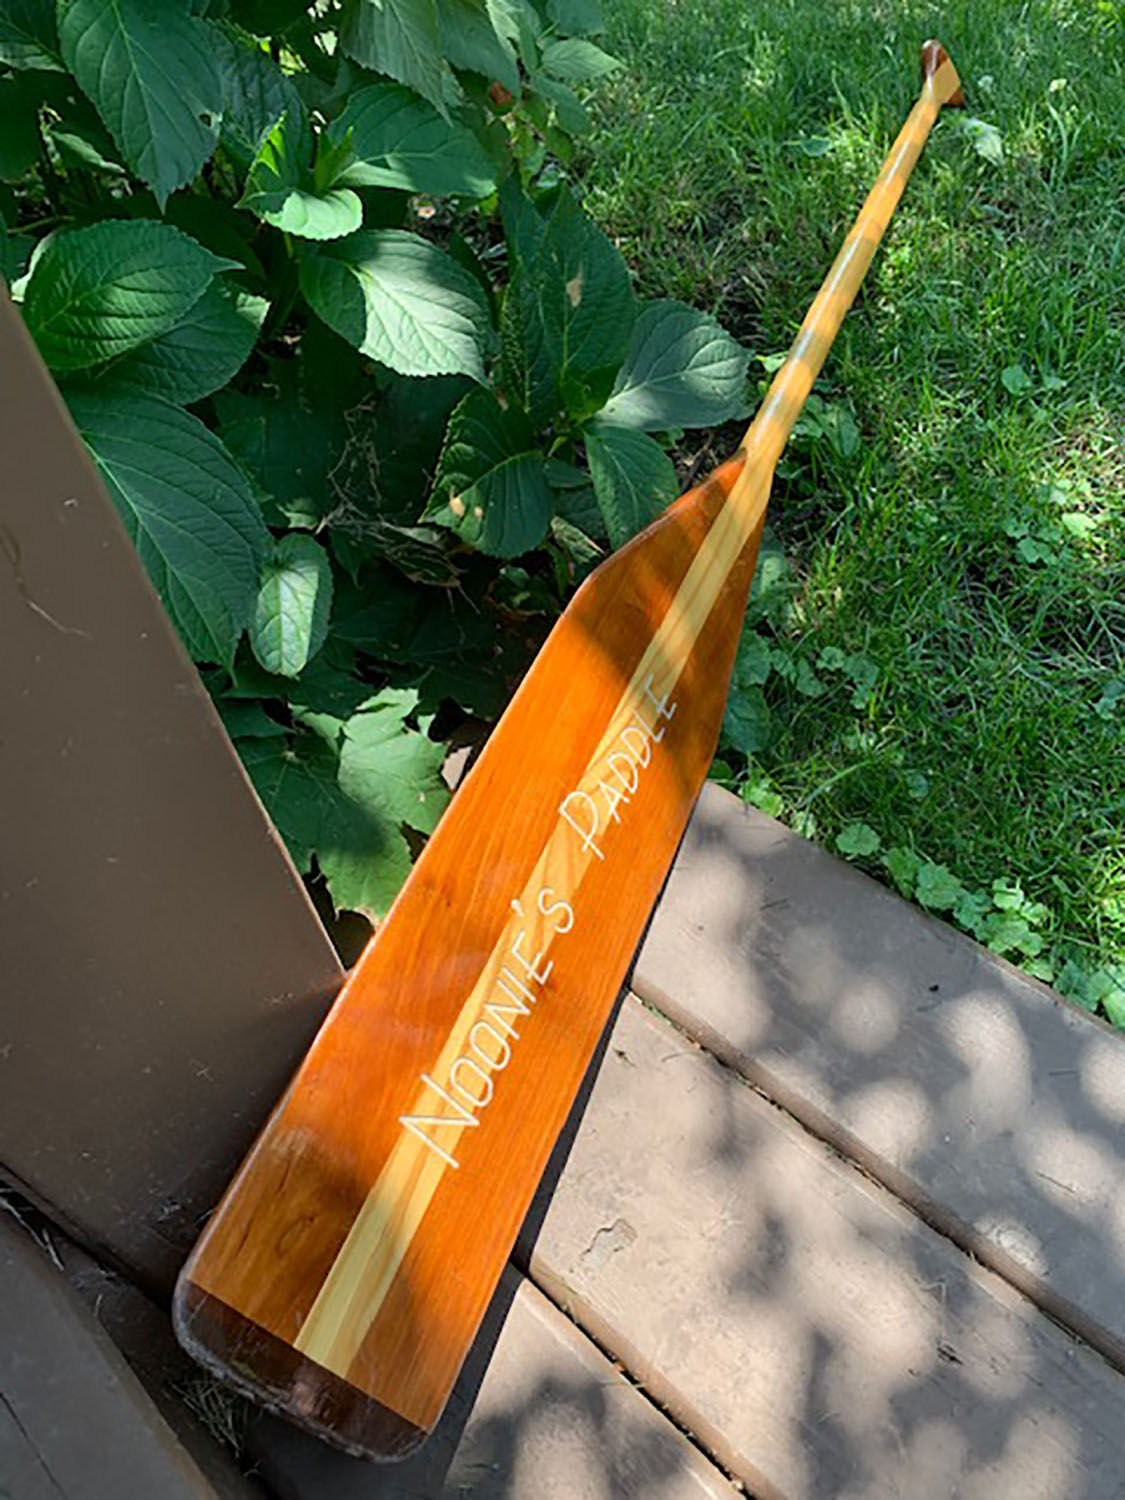 Suzanne Reisler Litwin: Lessons from the Canoe — Being 6 or 86